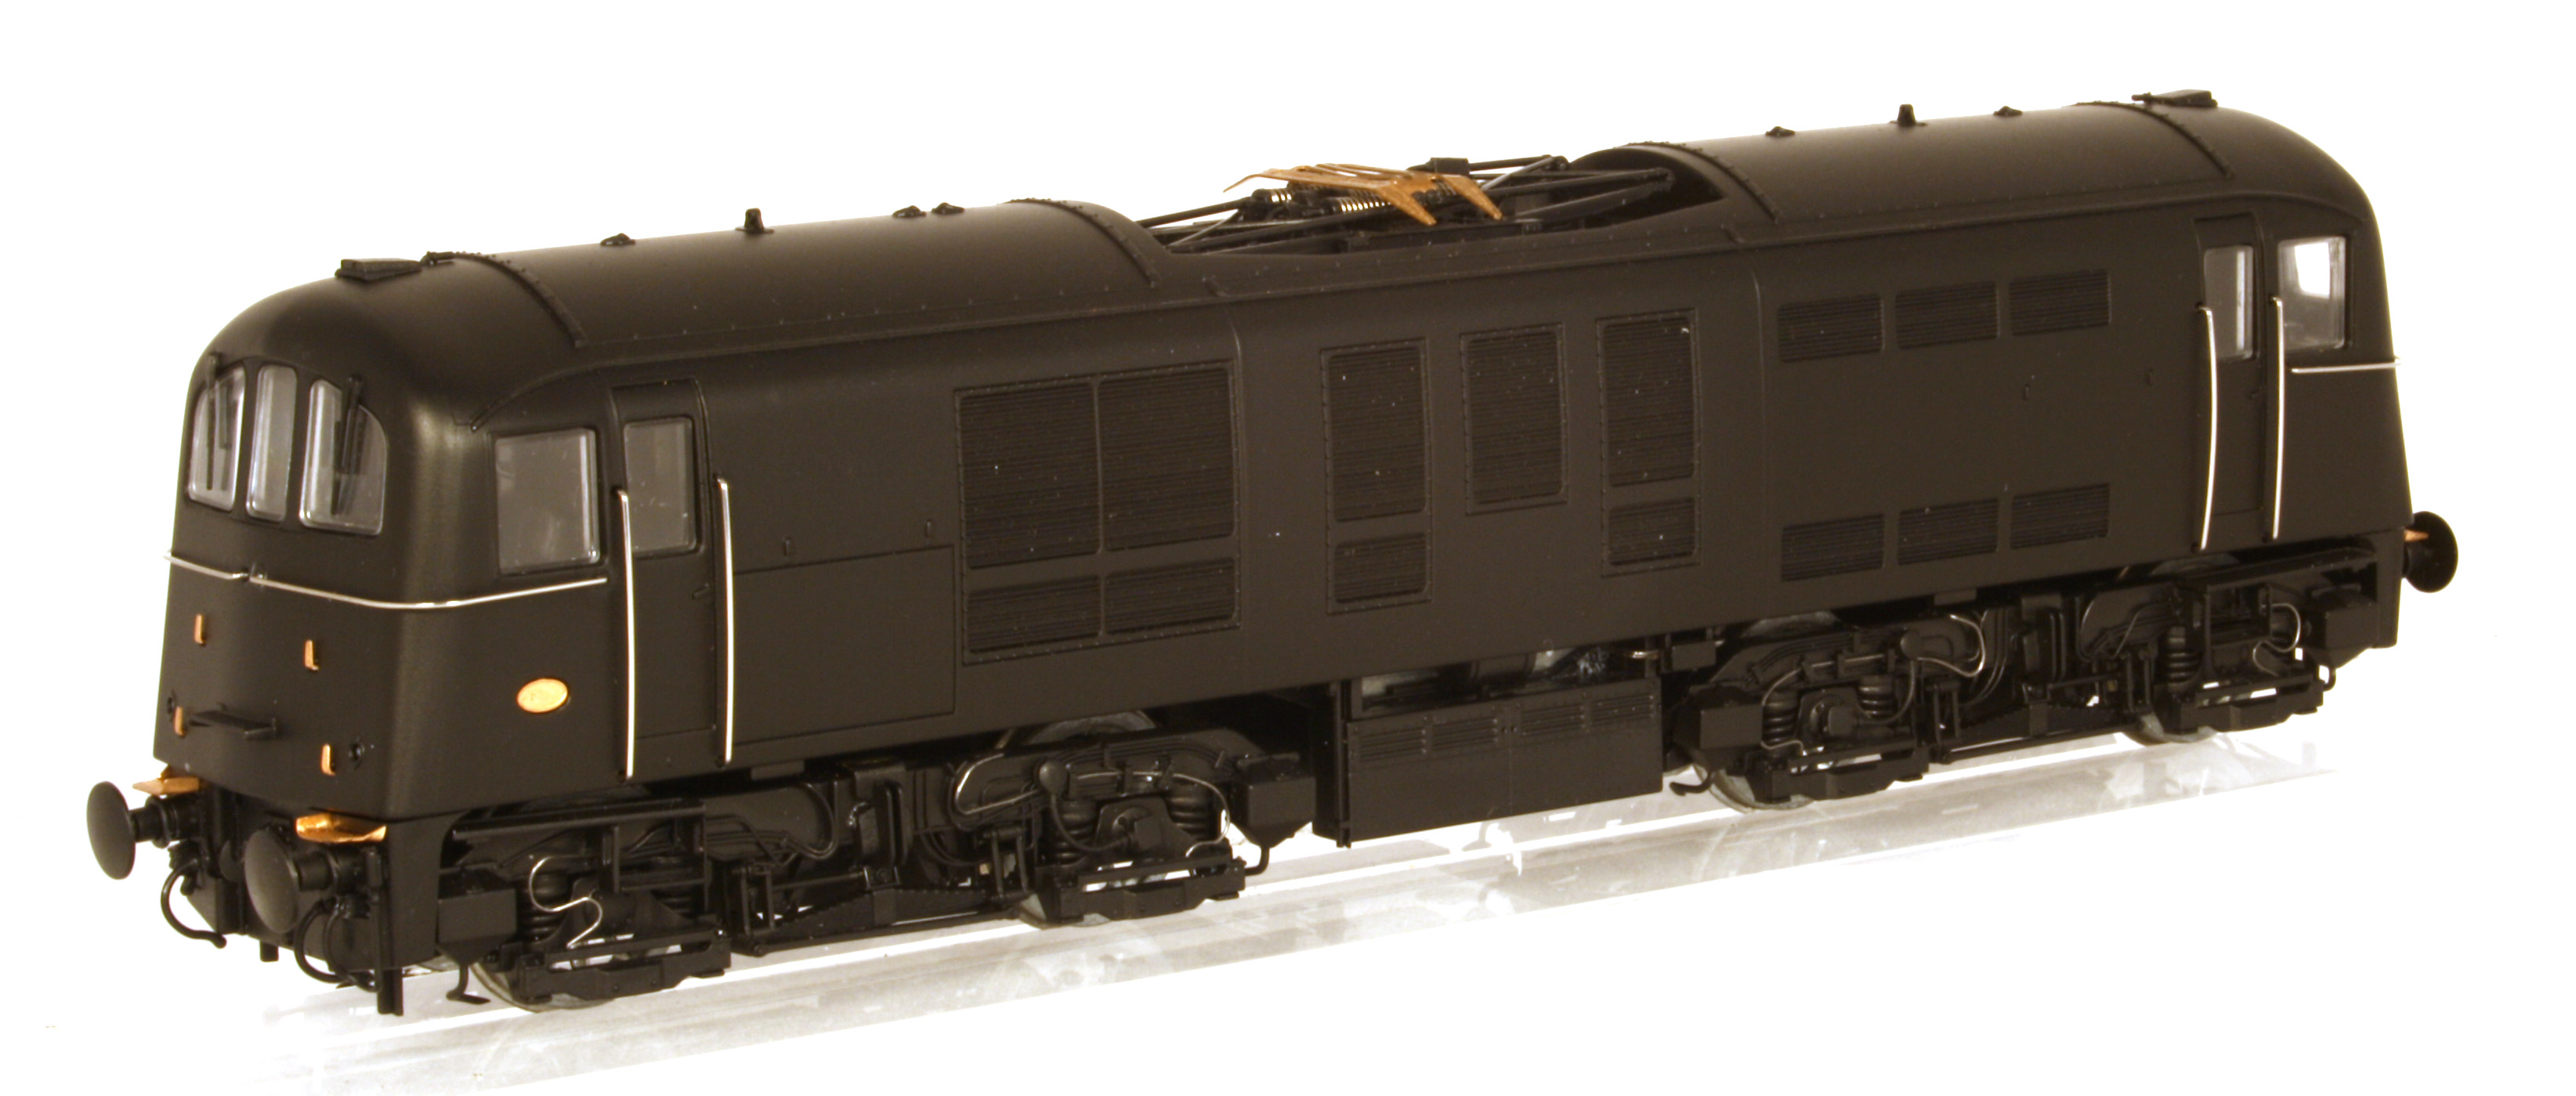 Class 71 DJ Models Crowd Funded Project Image